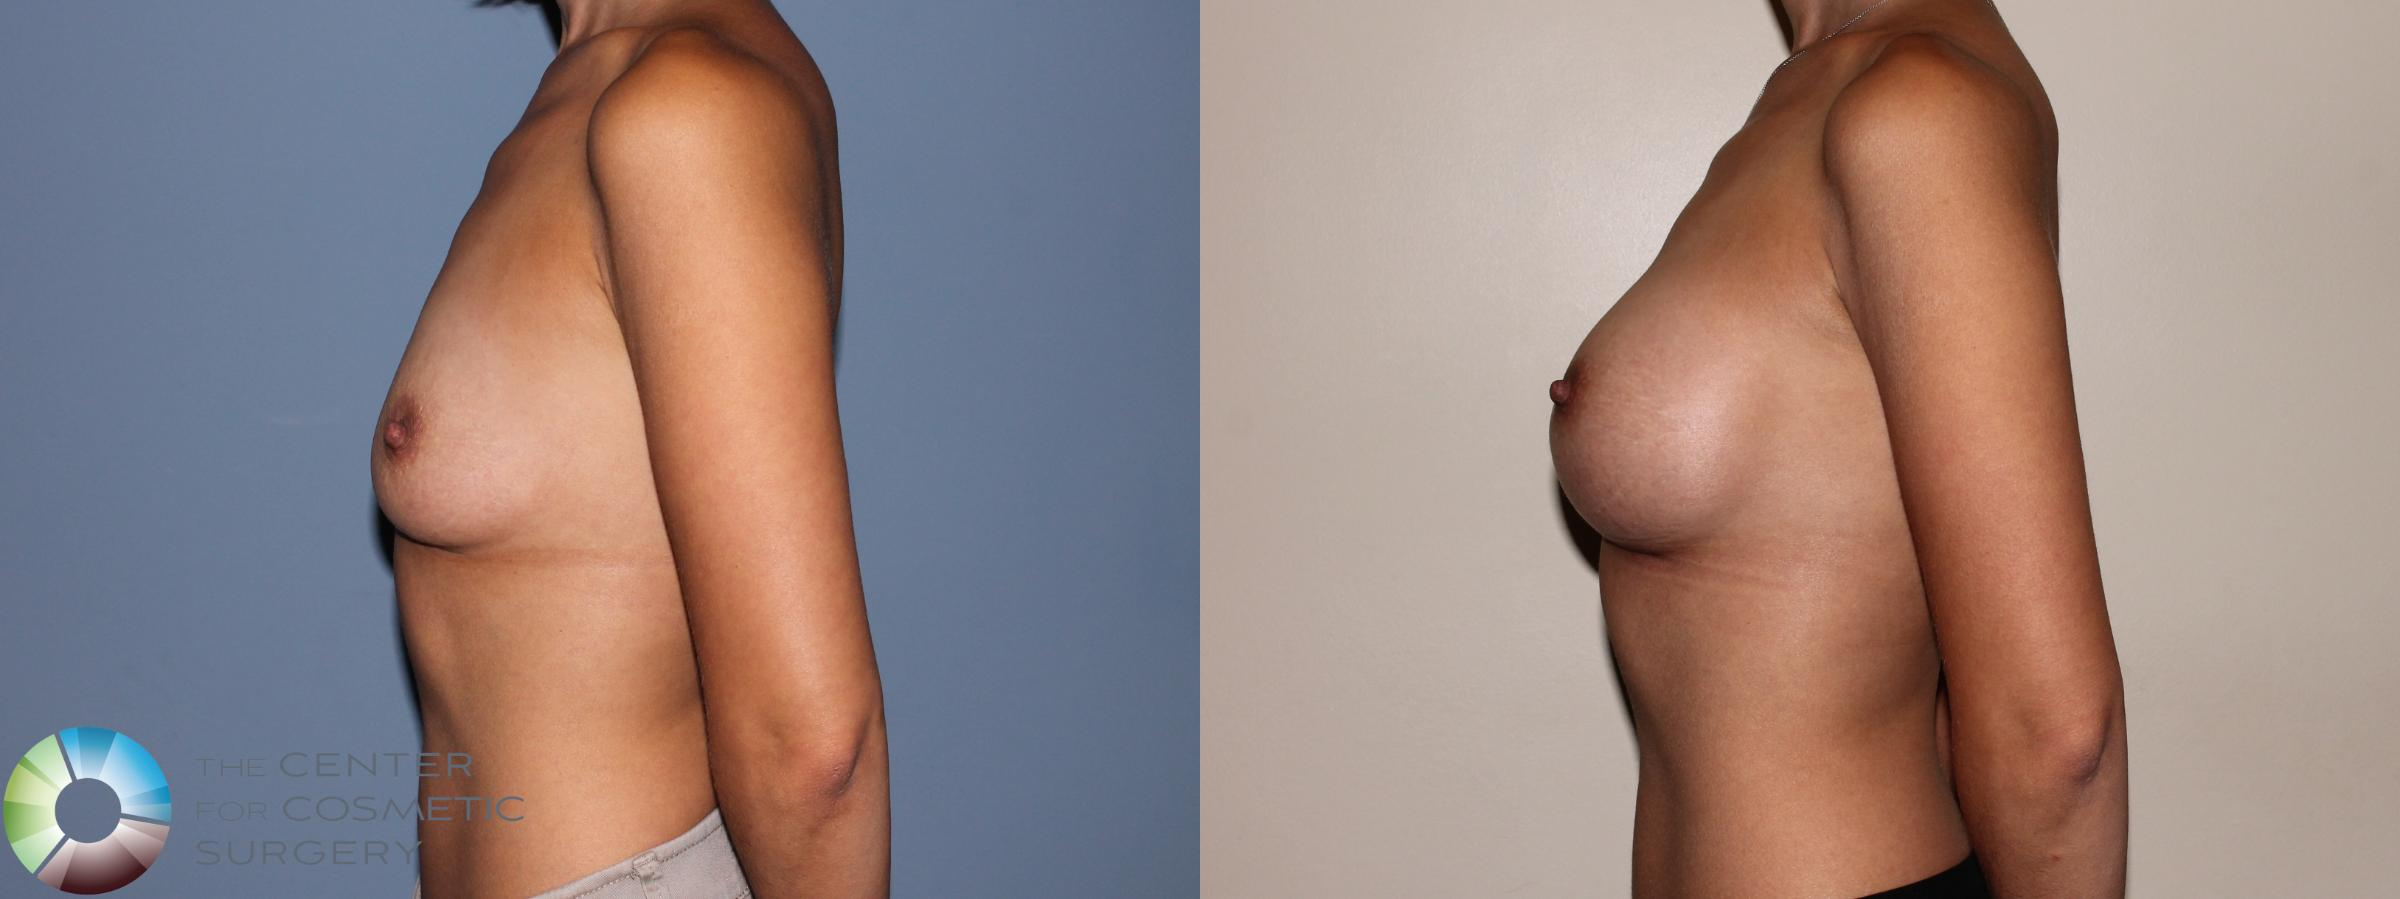 Breast Augmentation Case 709 Before & After View #3 | Golden, CO | The Center for Cosmetic Surgery